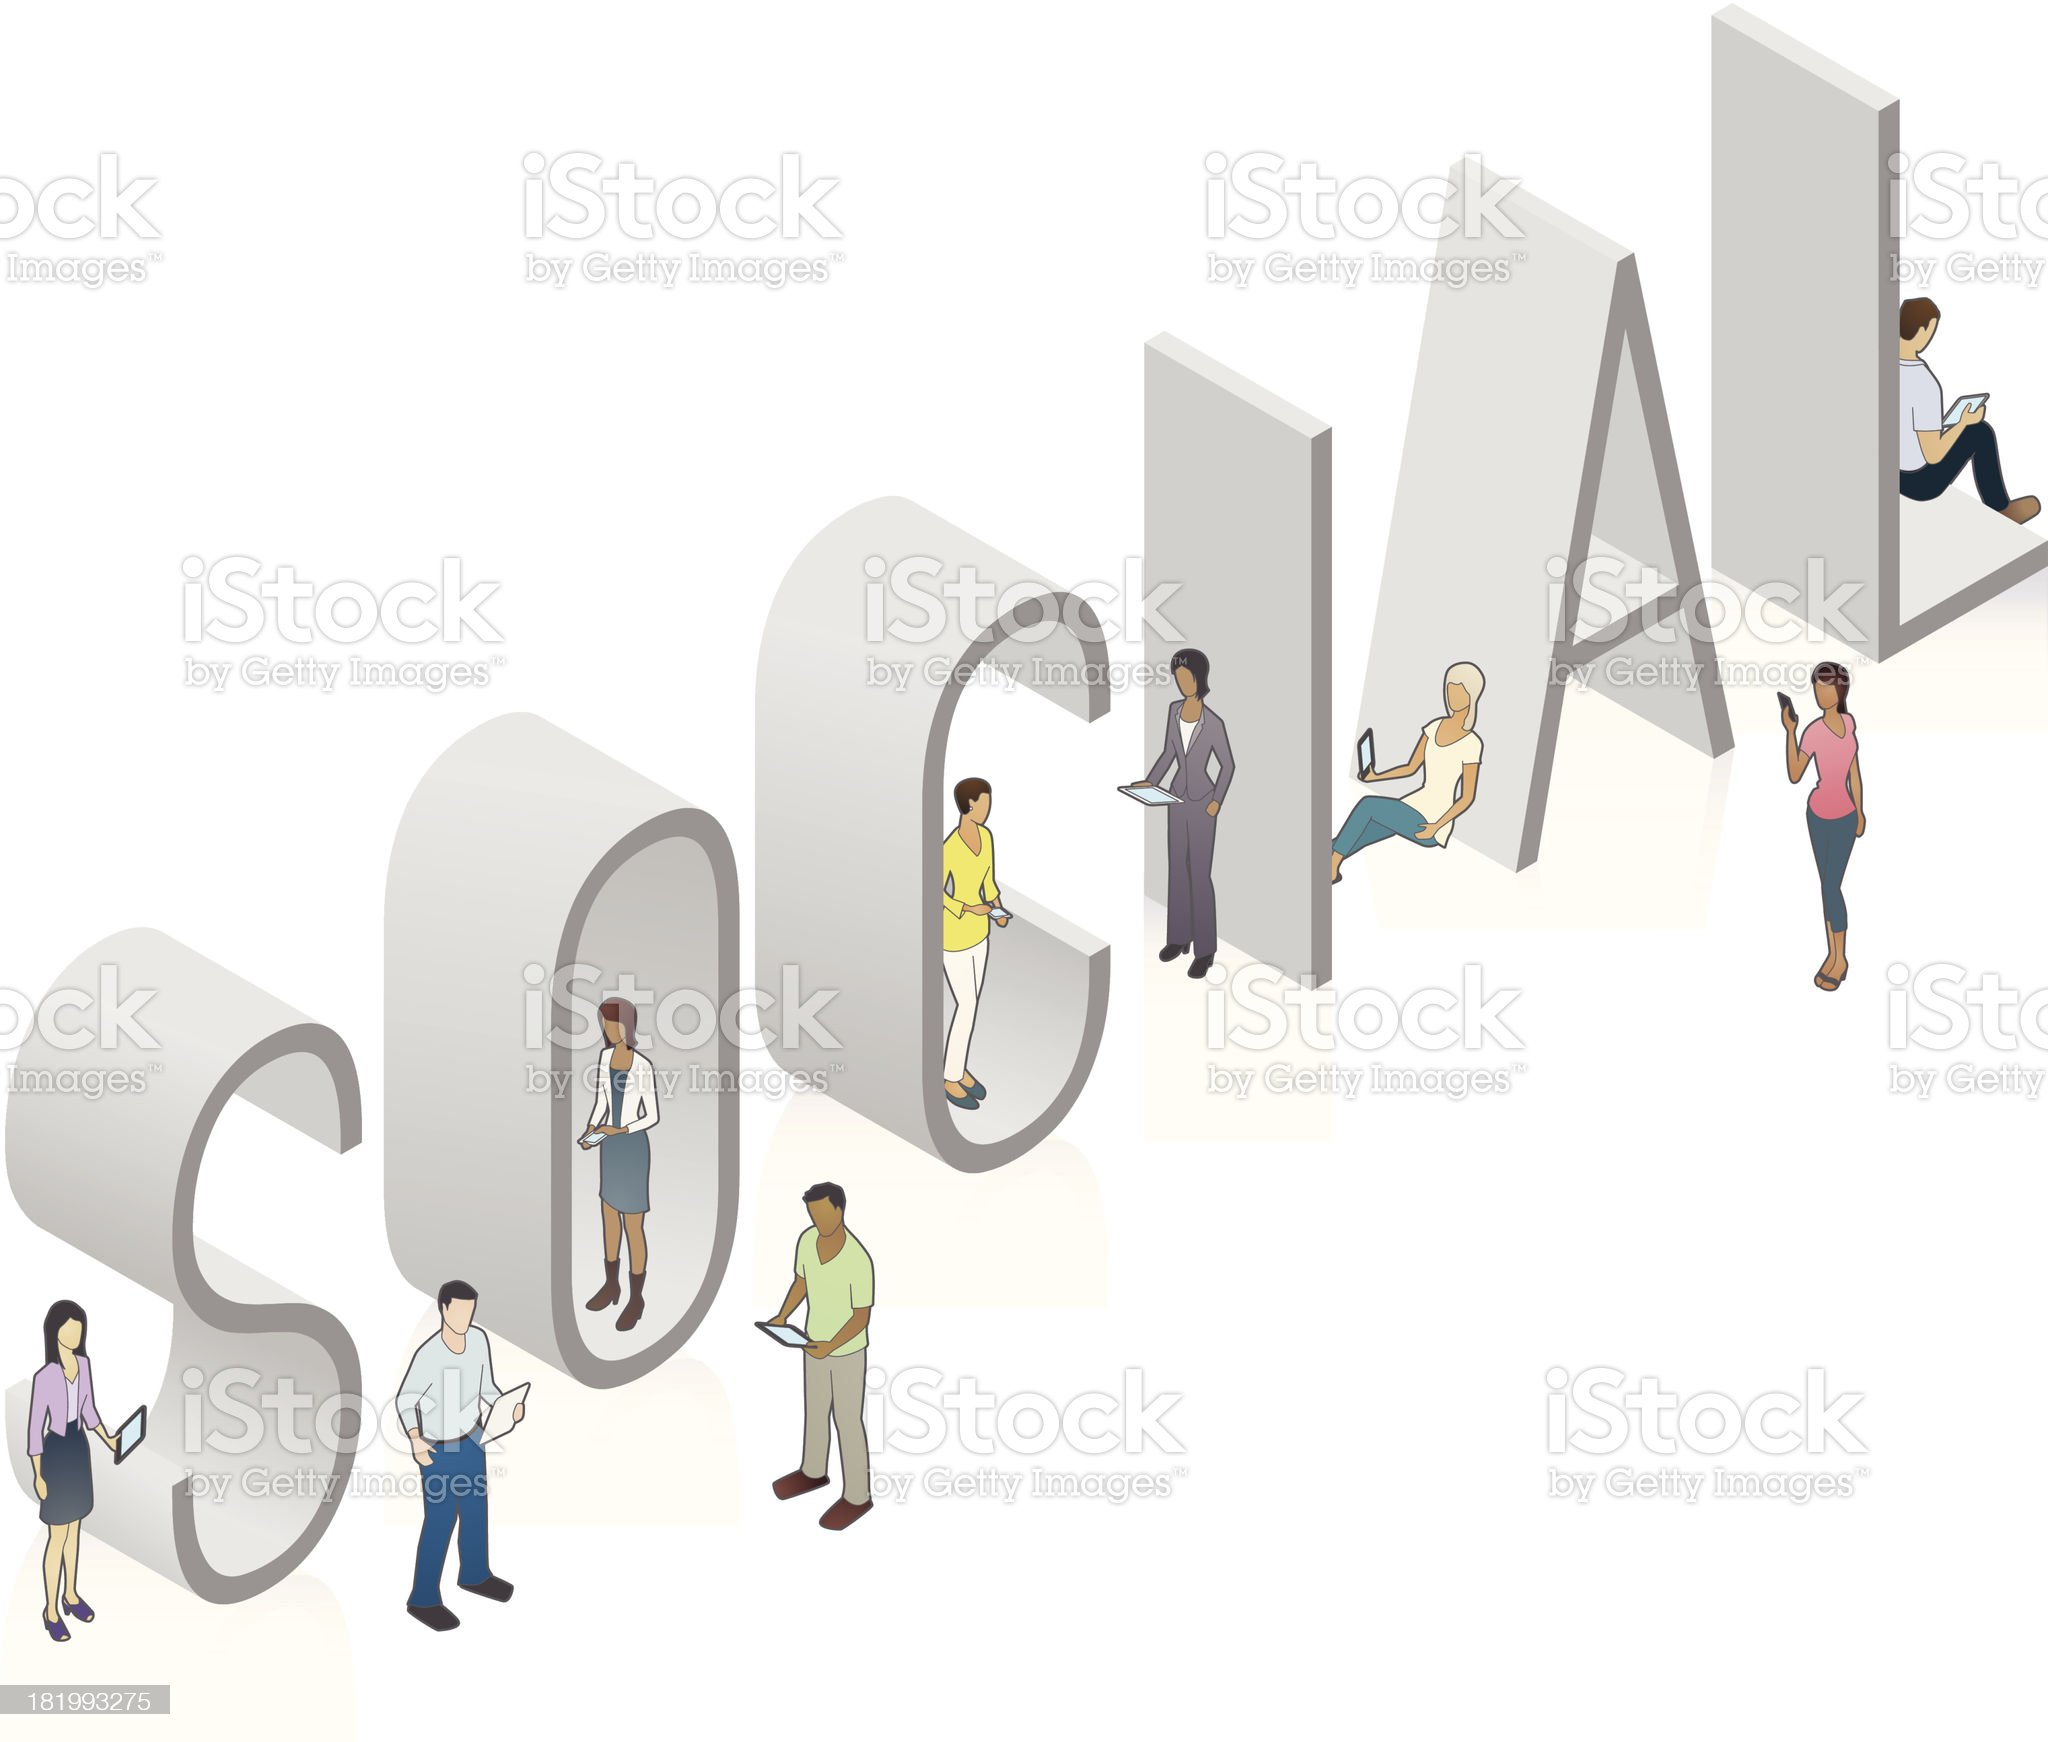 SOCIAL Word Art royalty-free stock vector art